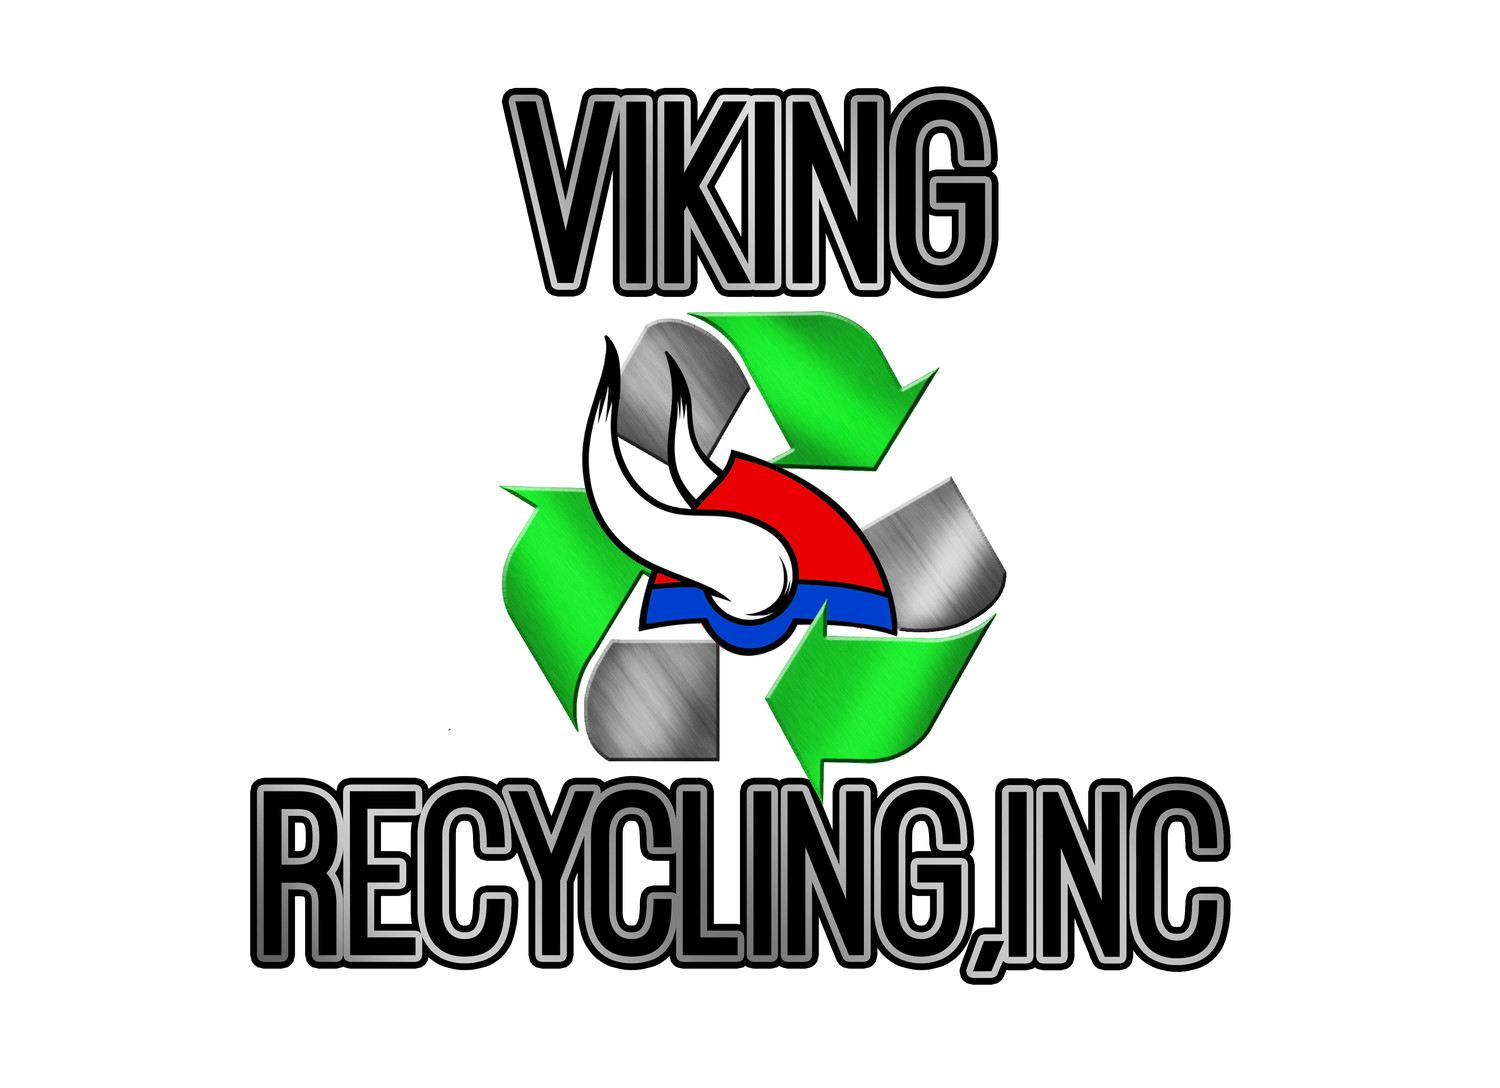 Viking Recycling, Inc.